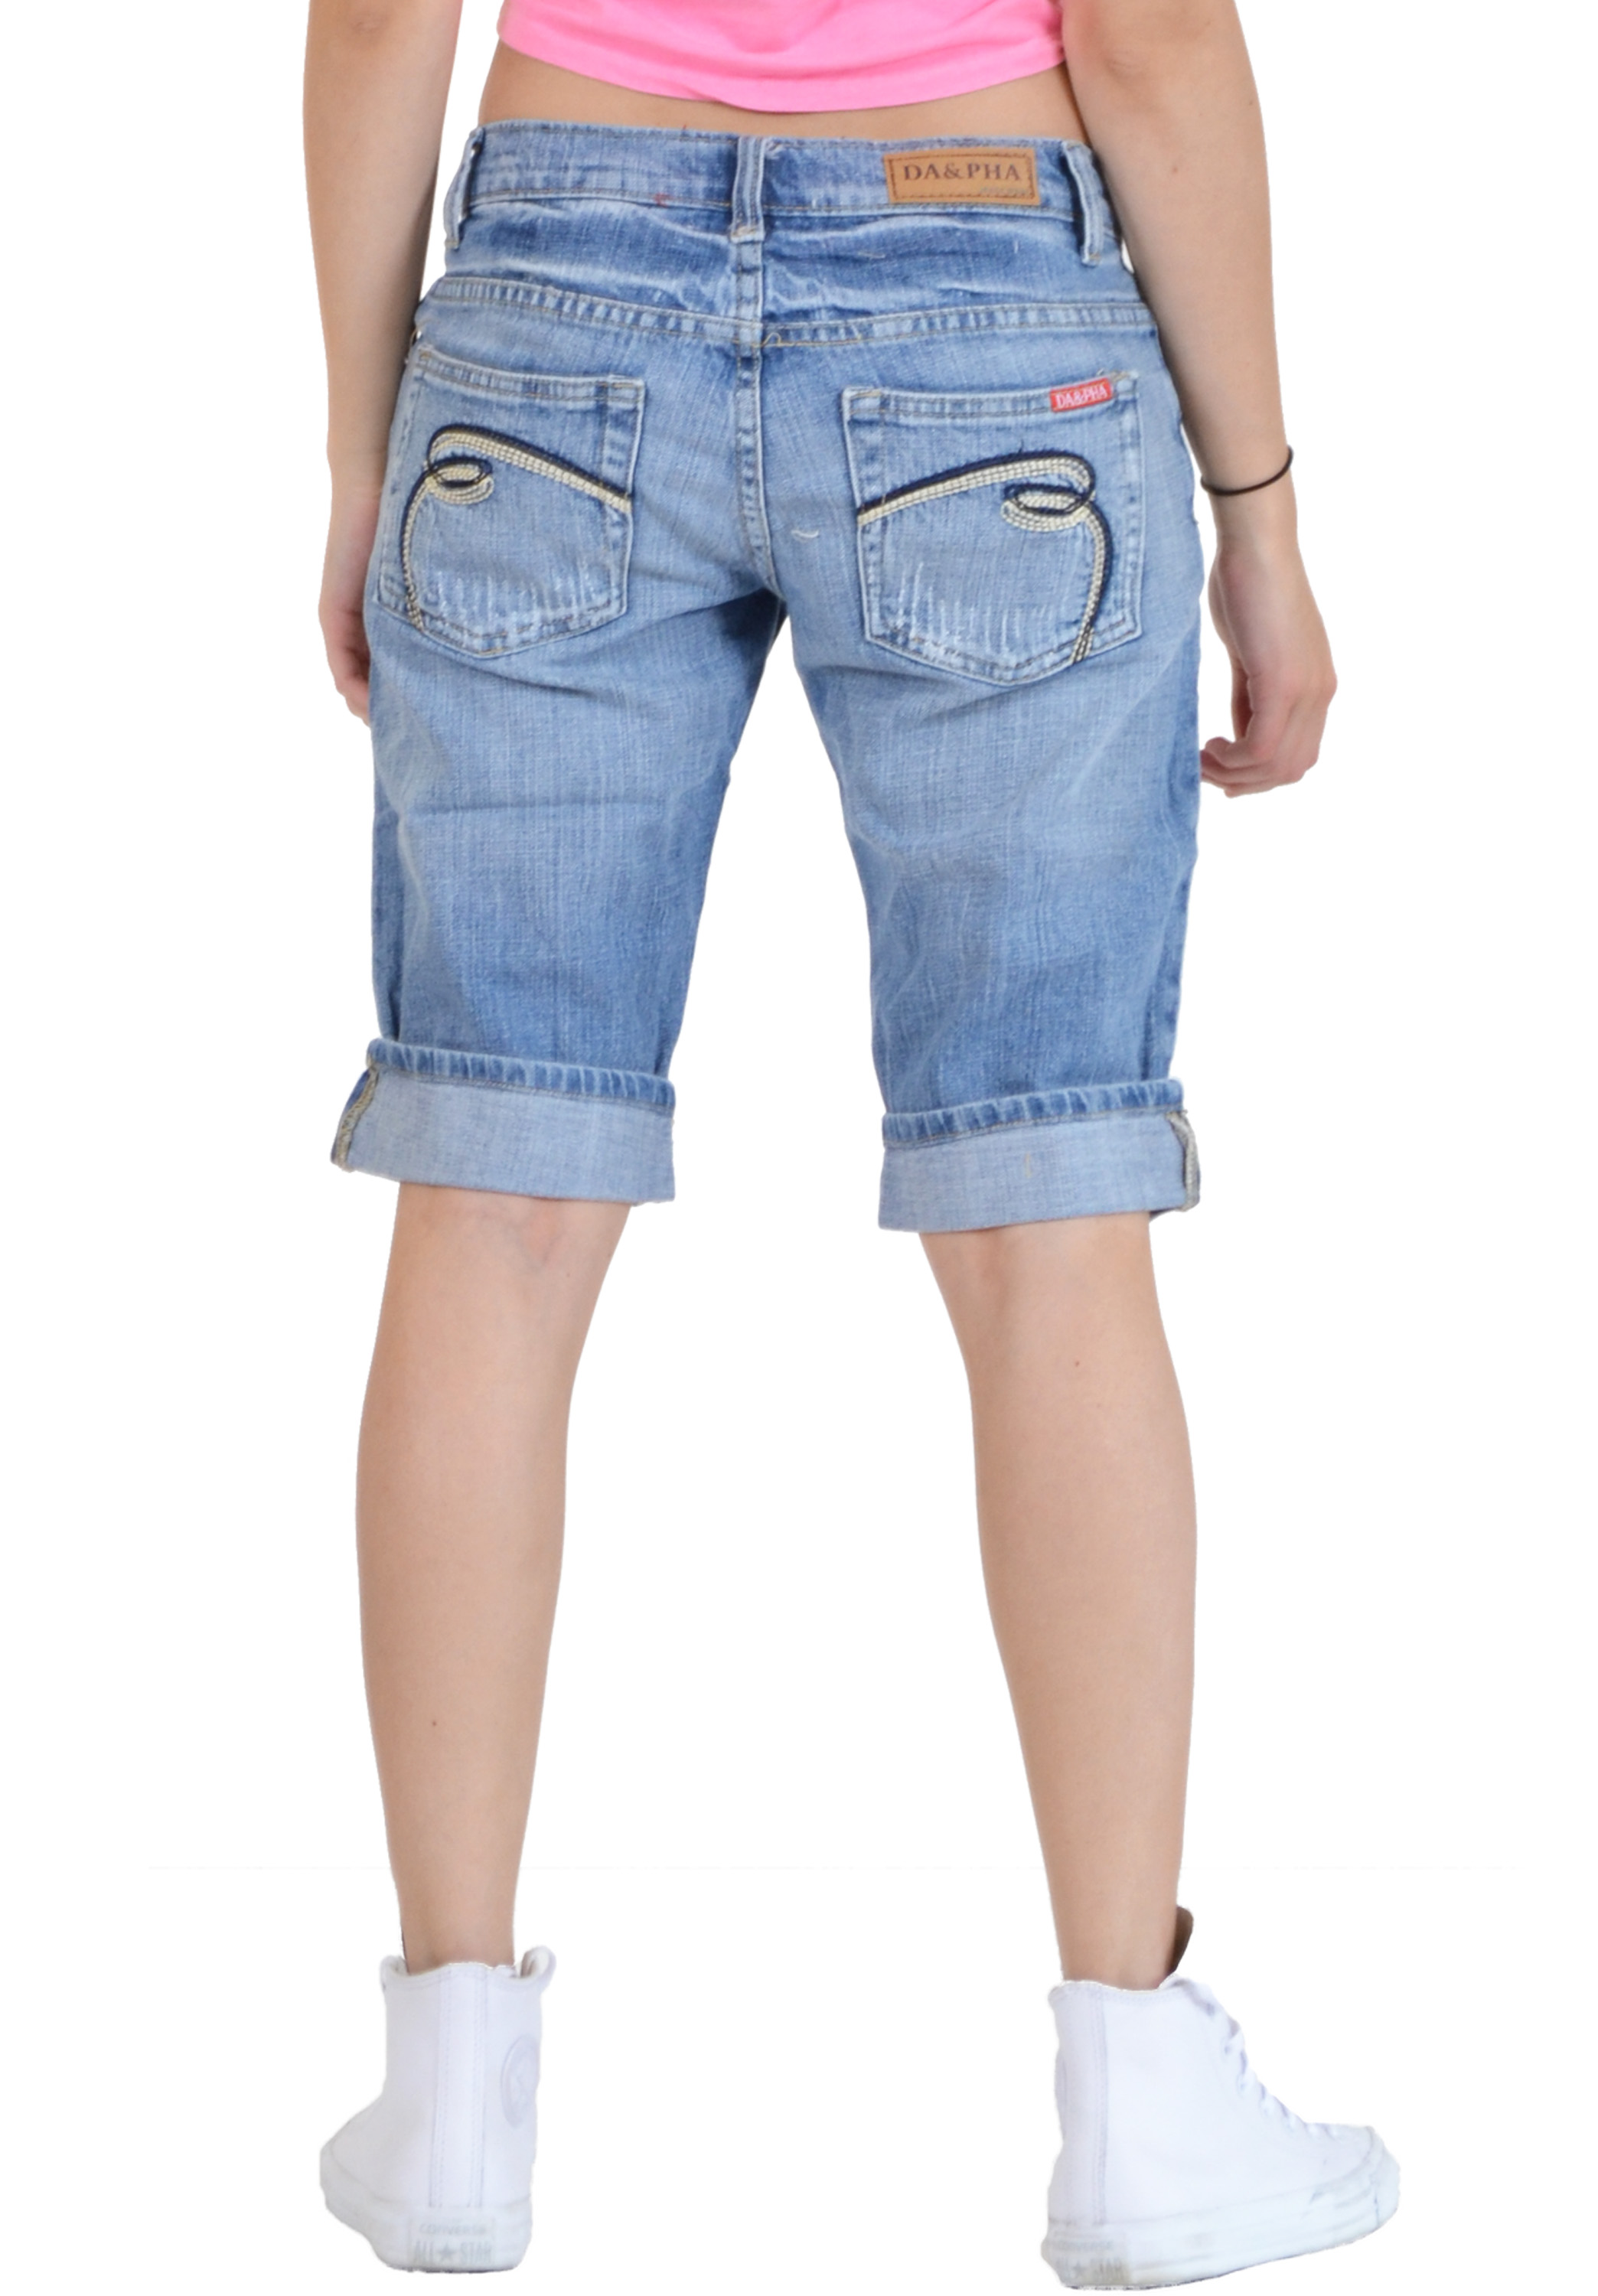 Shop online for Women's Long Shorts at litastmaterlo.gq Find trouser, Bermuda, denim & cuffed shorts. Free Shipping. Free Returns. All the time.